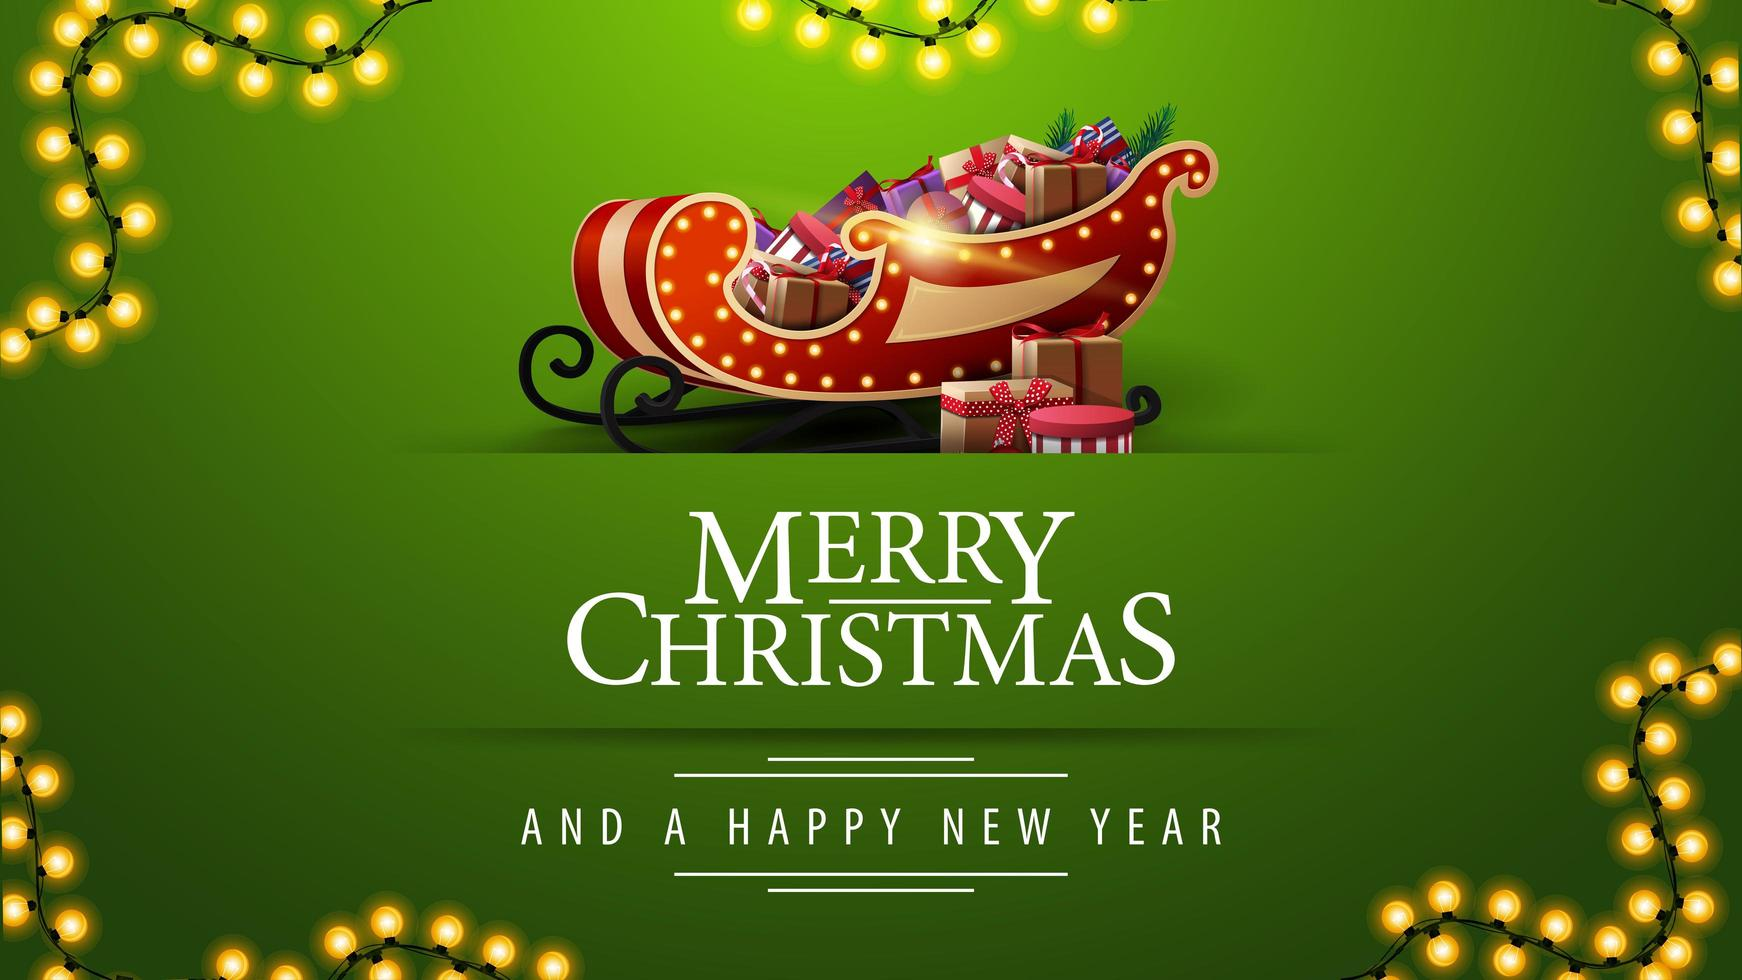 Merry Christmas and a happy New Year, green greeting postcard with garland and Santa Sleigh with presents vector